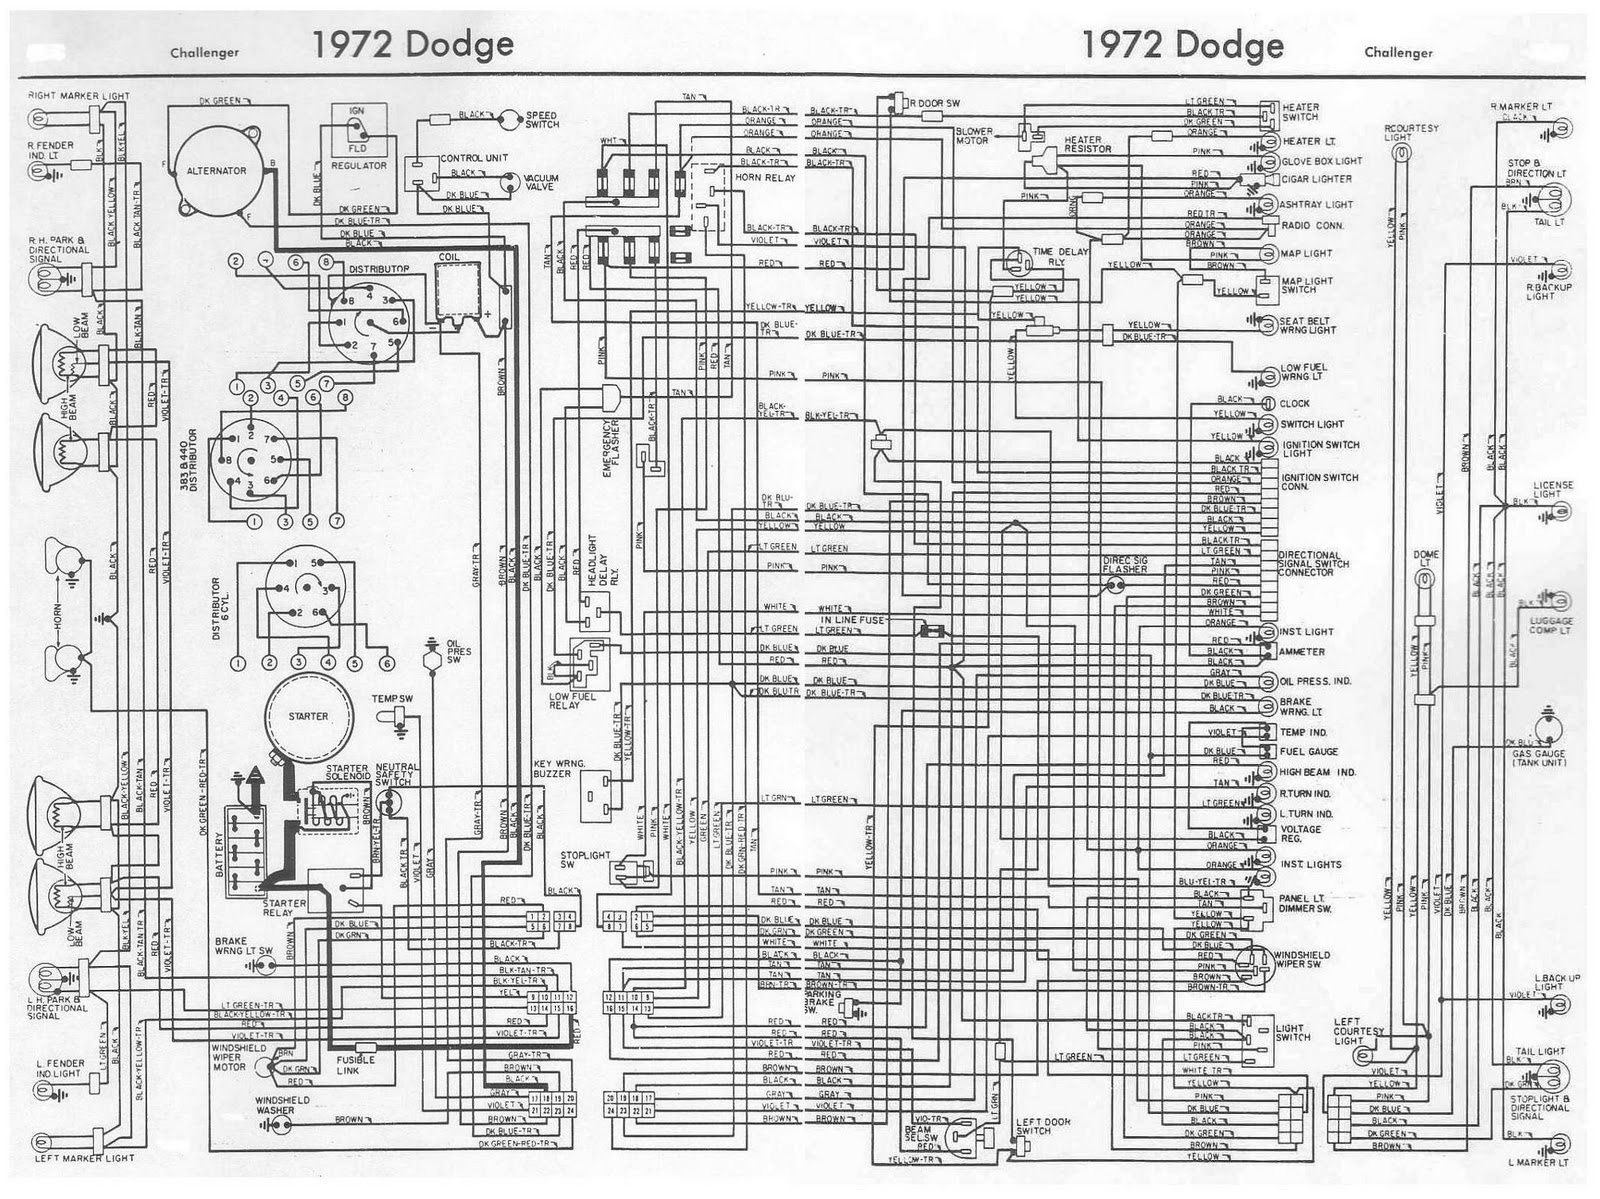 1972 dodge charger wiring schematic free download diagram 1972 dodge charger wiring diagram